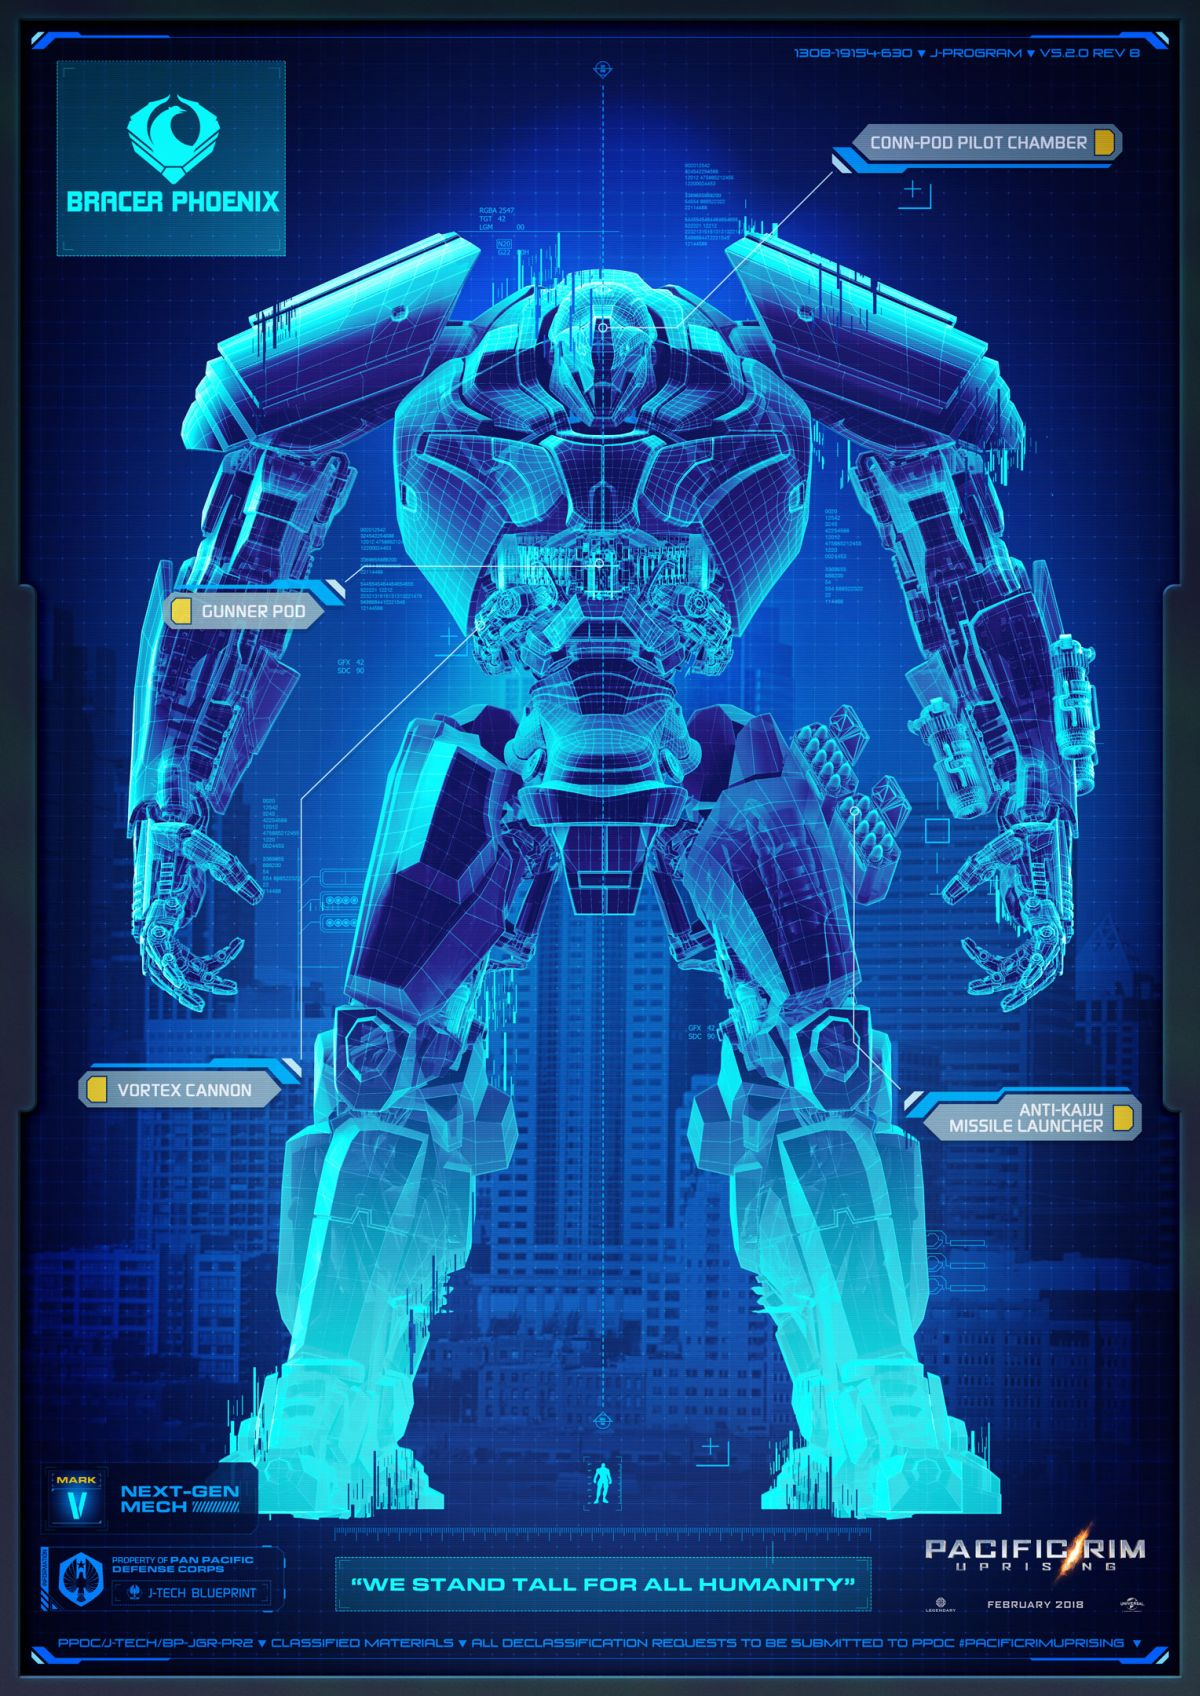 Sdcc 2017 Meet The New Jaegers Of Pacific Rim Uprising Plot Details Revealed in addition Adding Soft Start To Water Pump Motors in addition Water Well Capacitor Diagram additionally Ddwashdiag further Search. on run capacitor chart